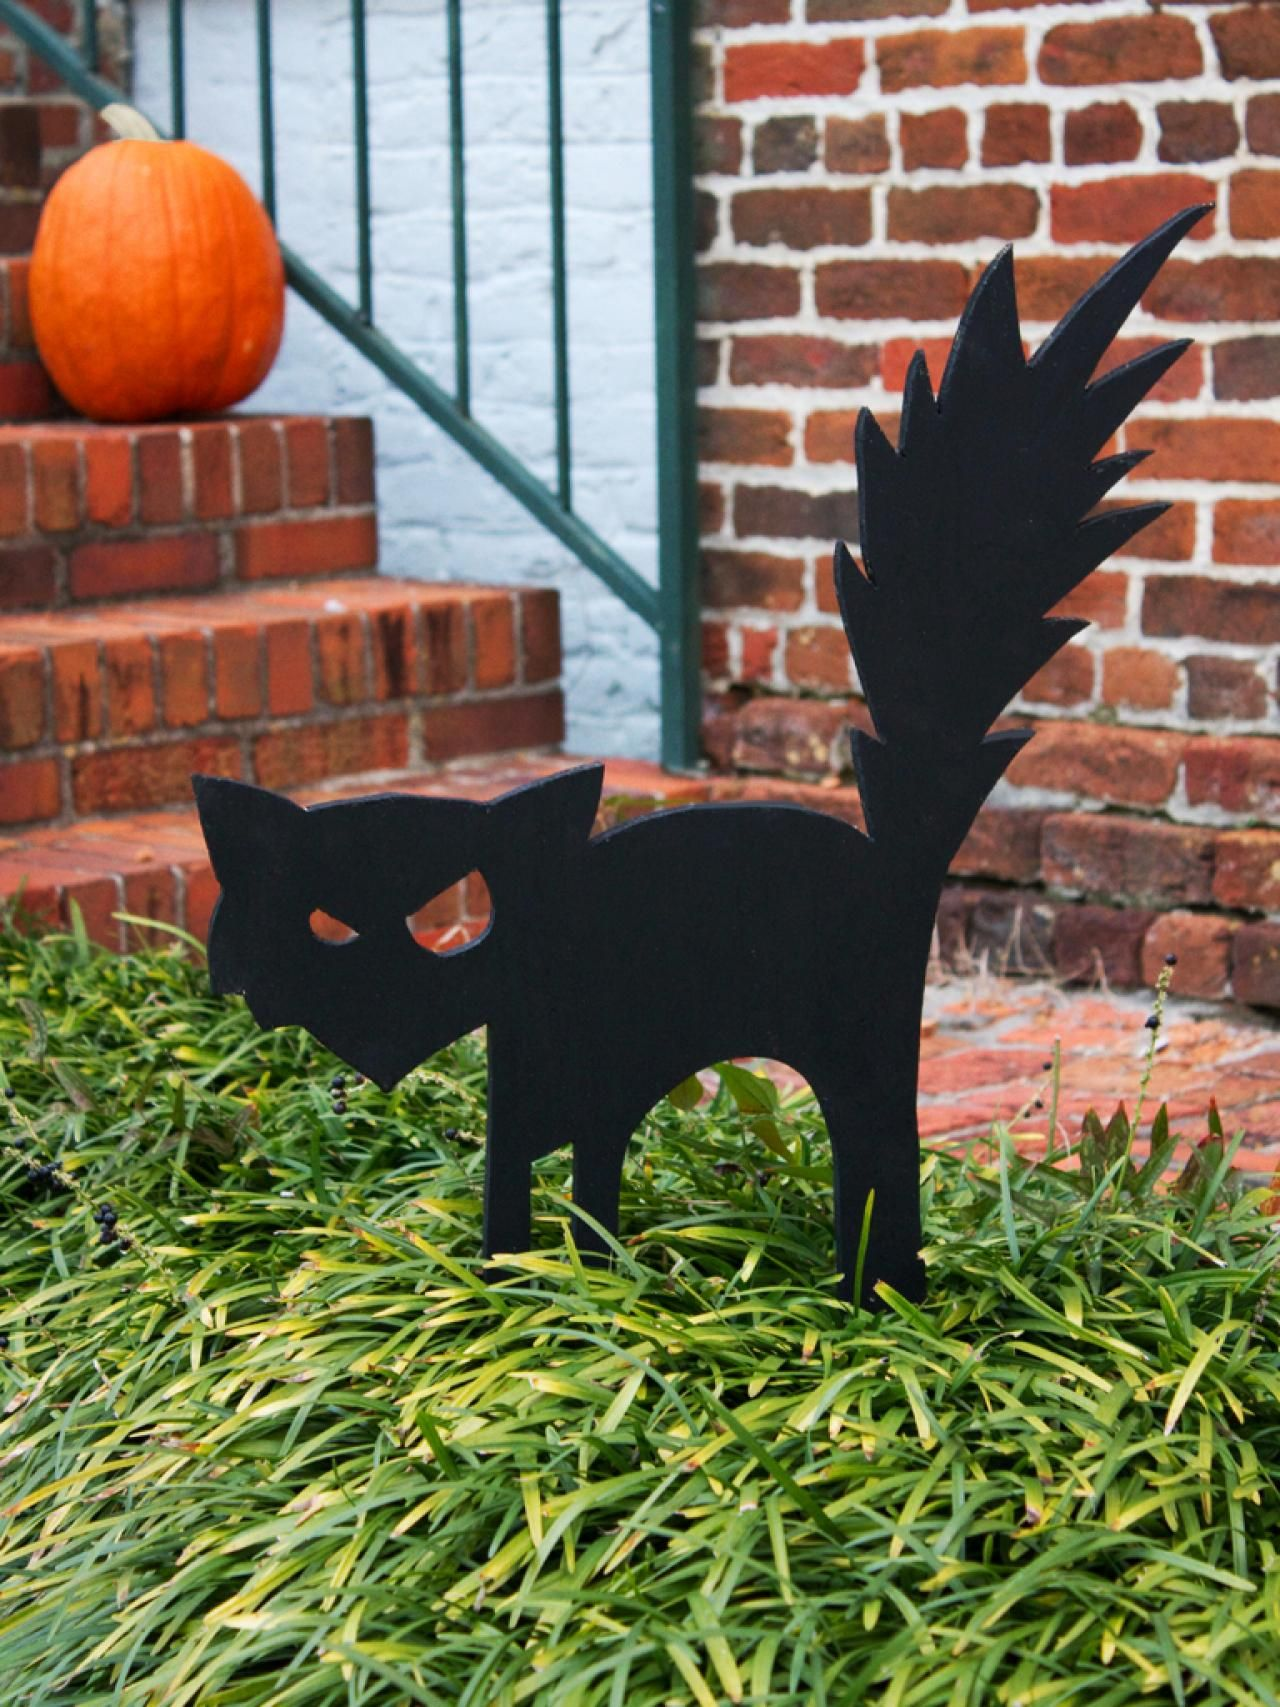 Uncategorized Cheap Easy Halloween Decorations 65 diy halloween decorations decorating ideas our 55 favorite easy crafts and homemade gift ideas